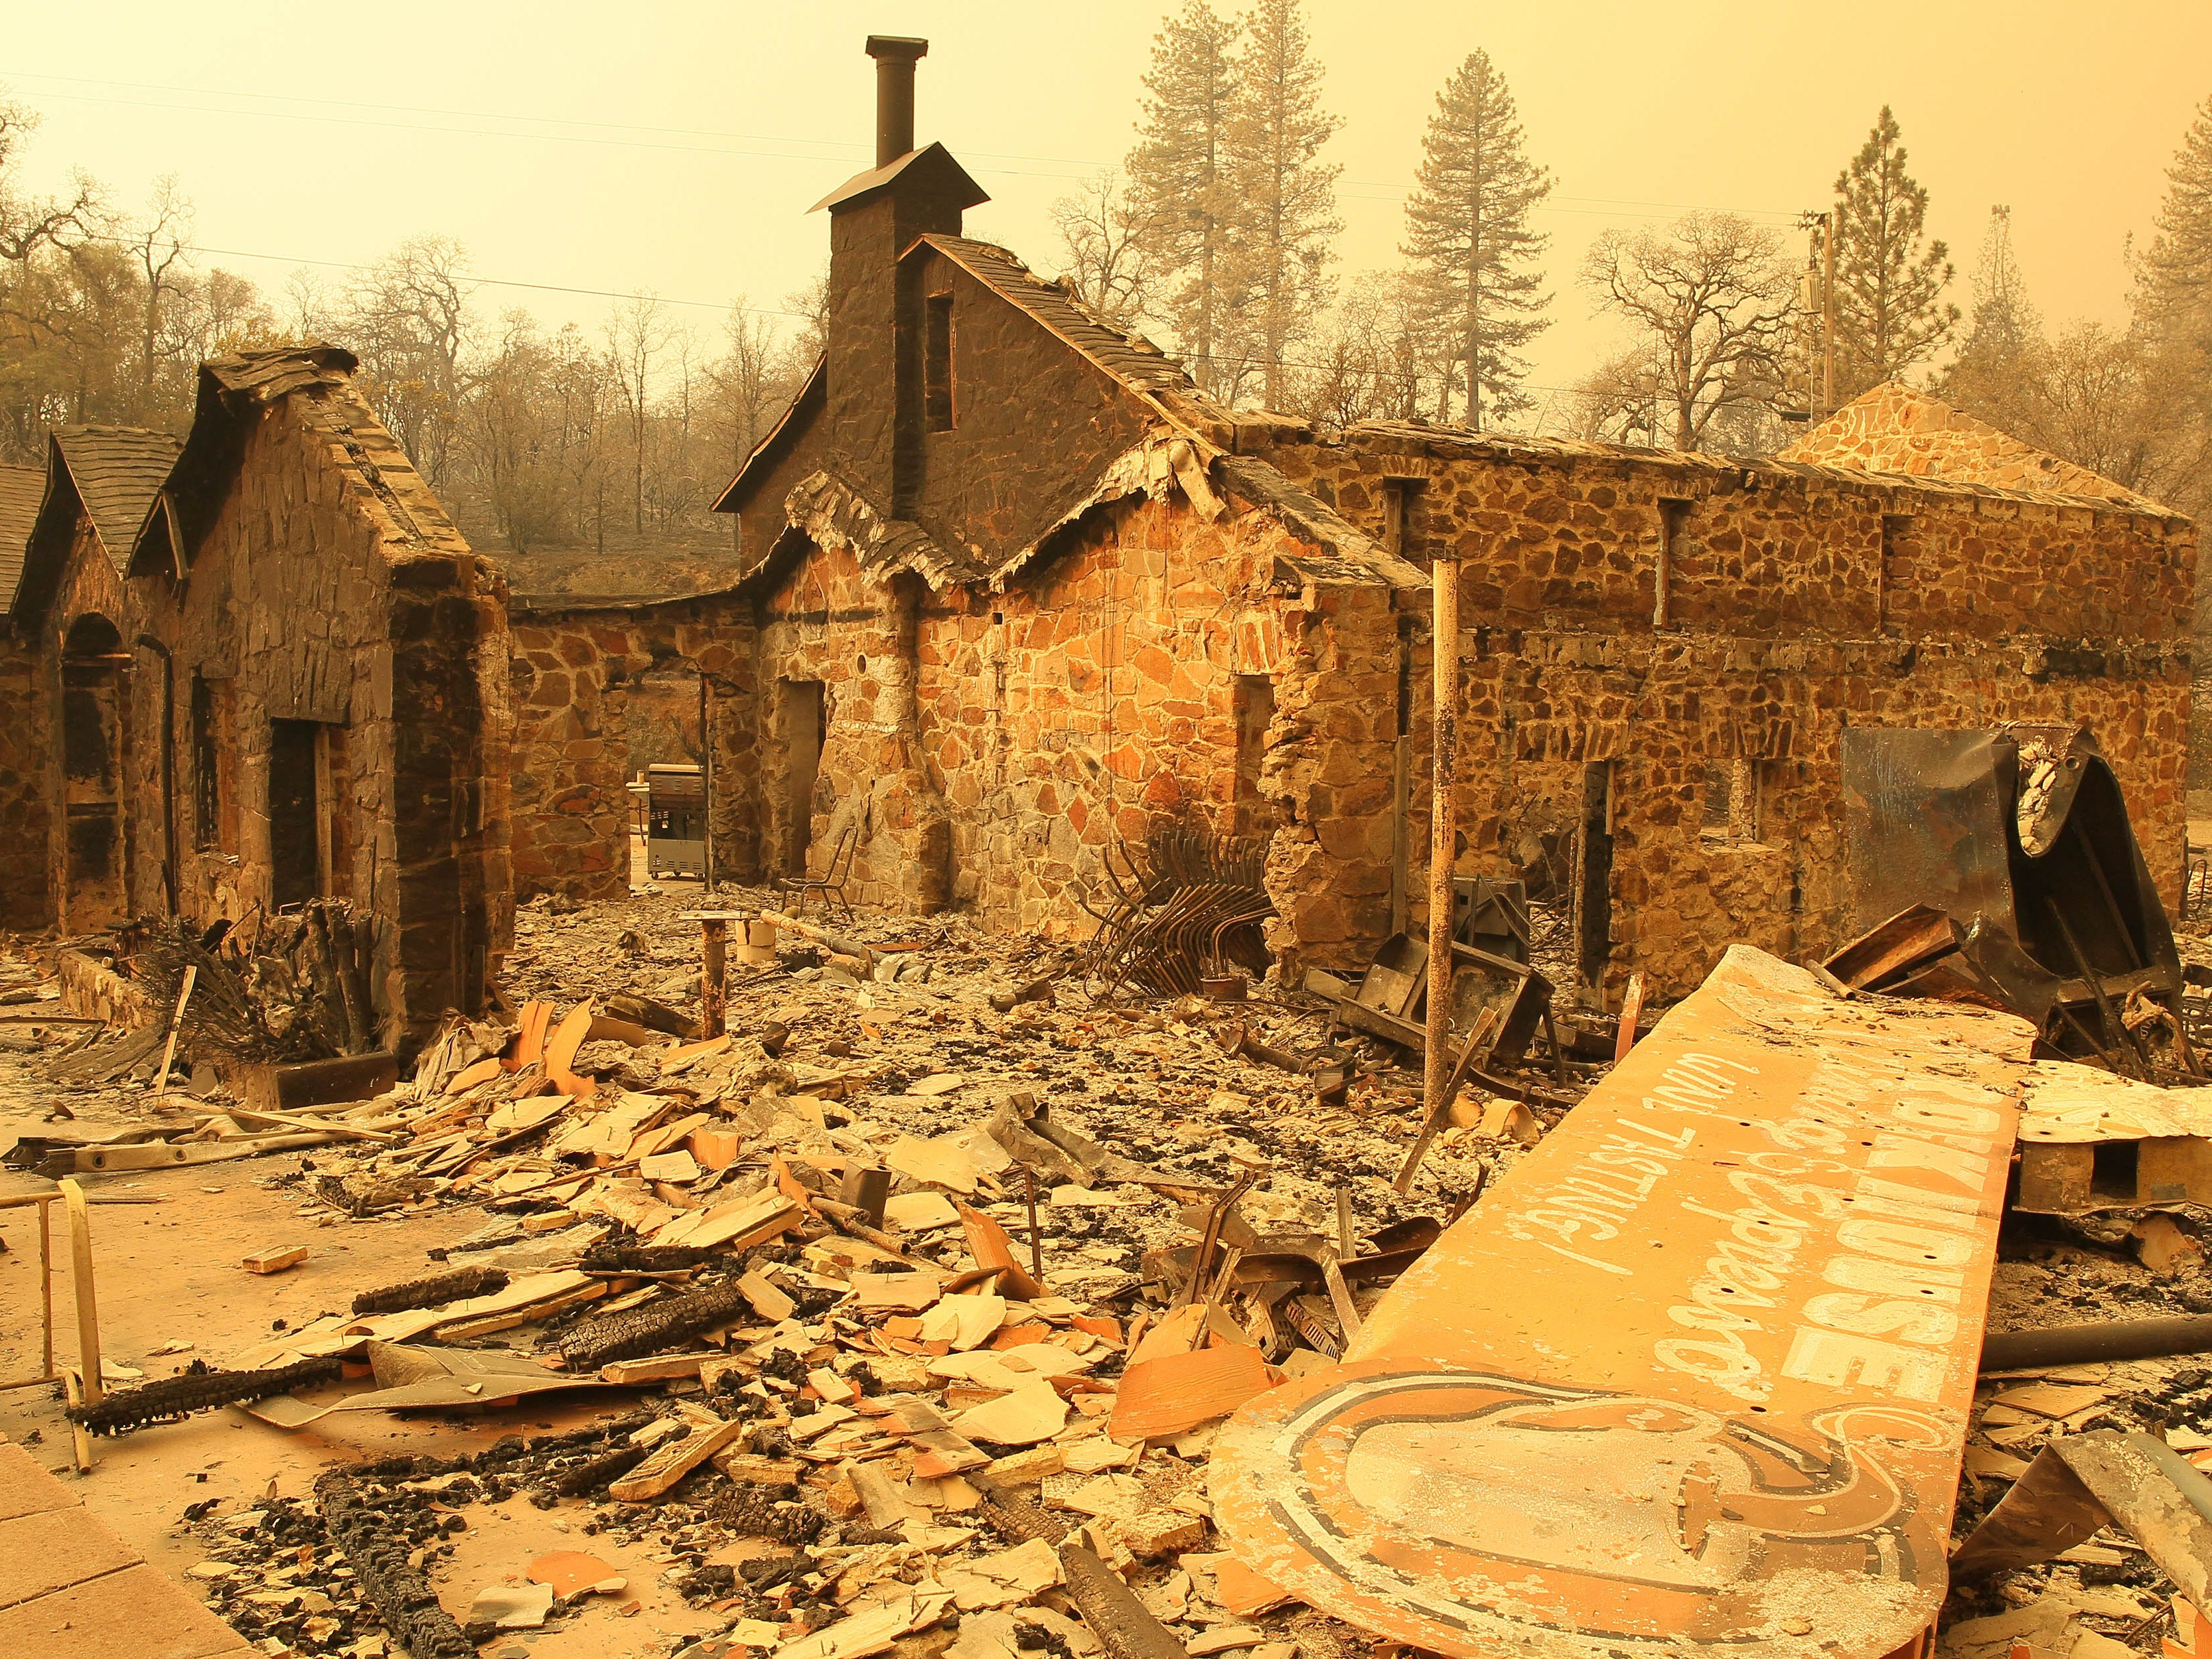 The remains of the Rock House, Dining & Espresso restaurant destroyed by the Camp Fire in Yankee Hill, Calif. on Nov. 11, 2018.